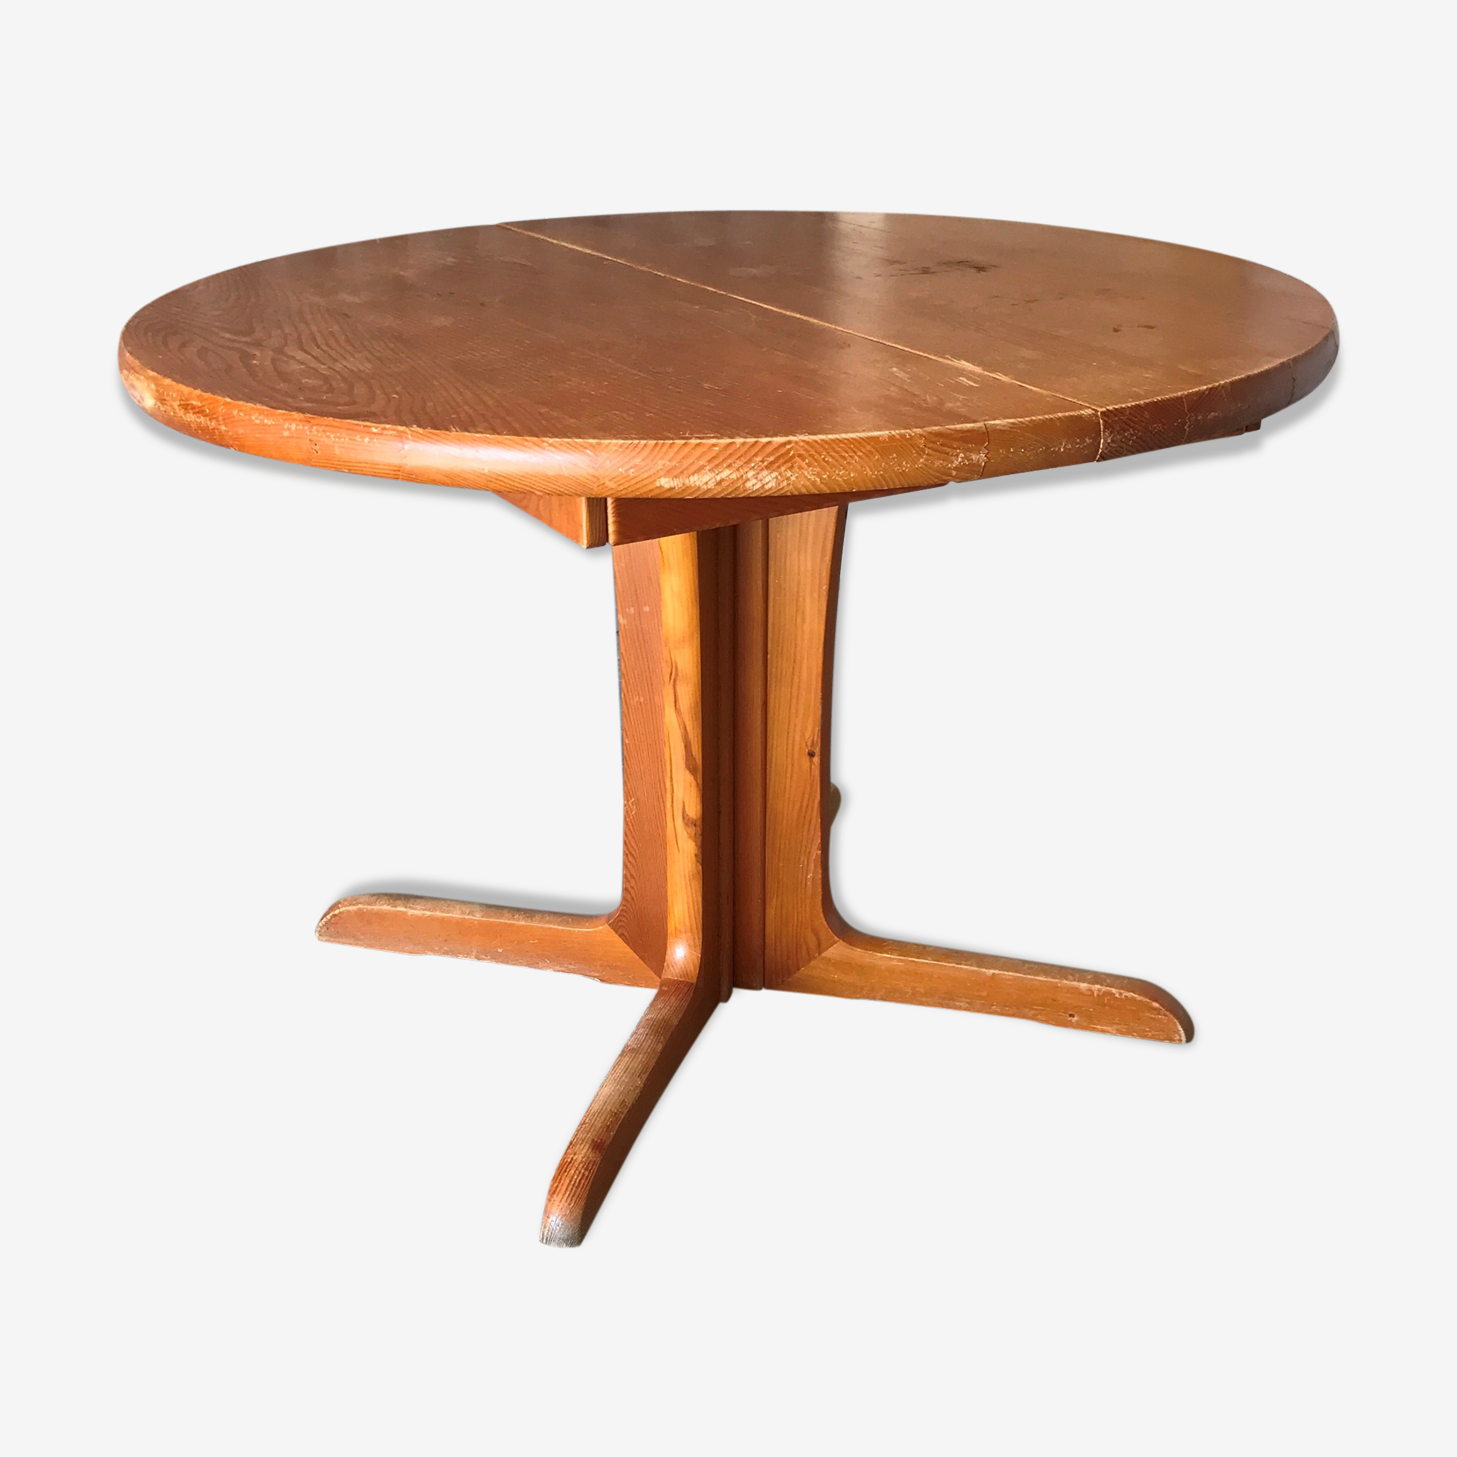 Oval round table 1970